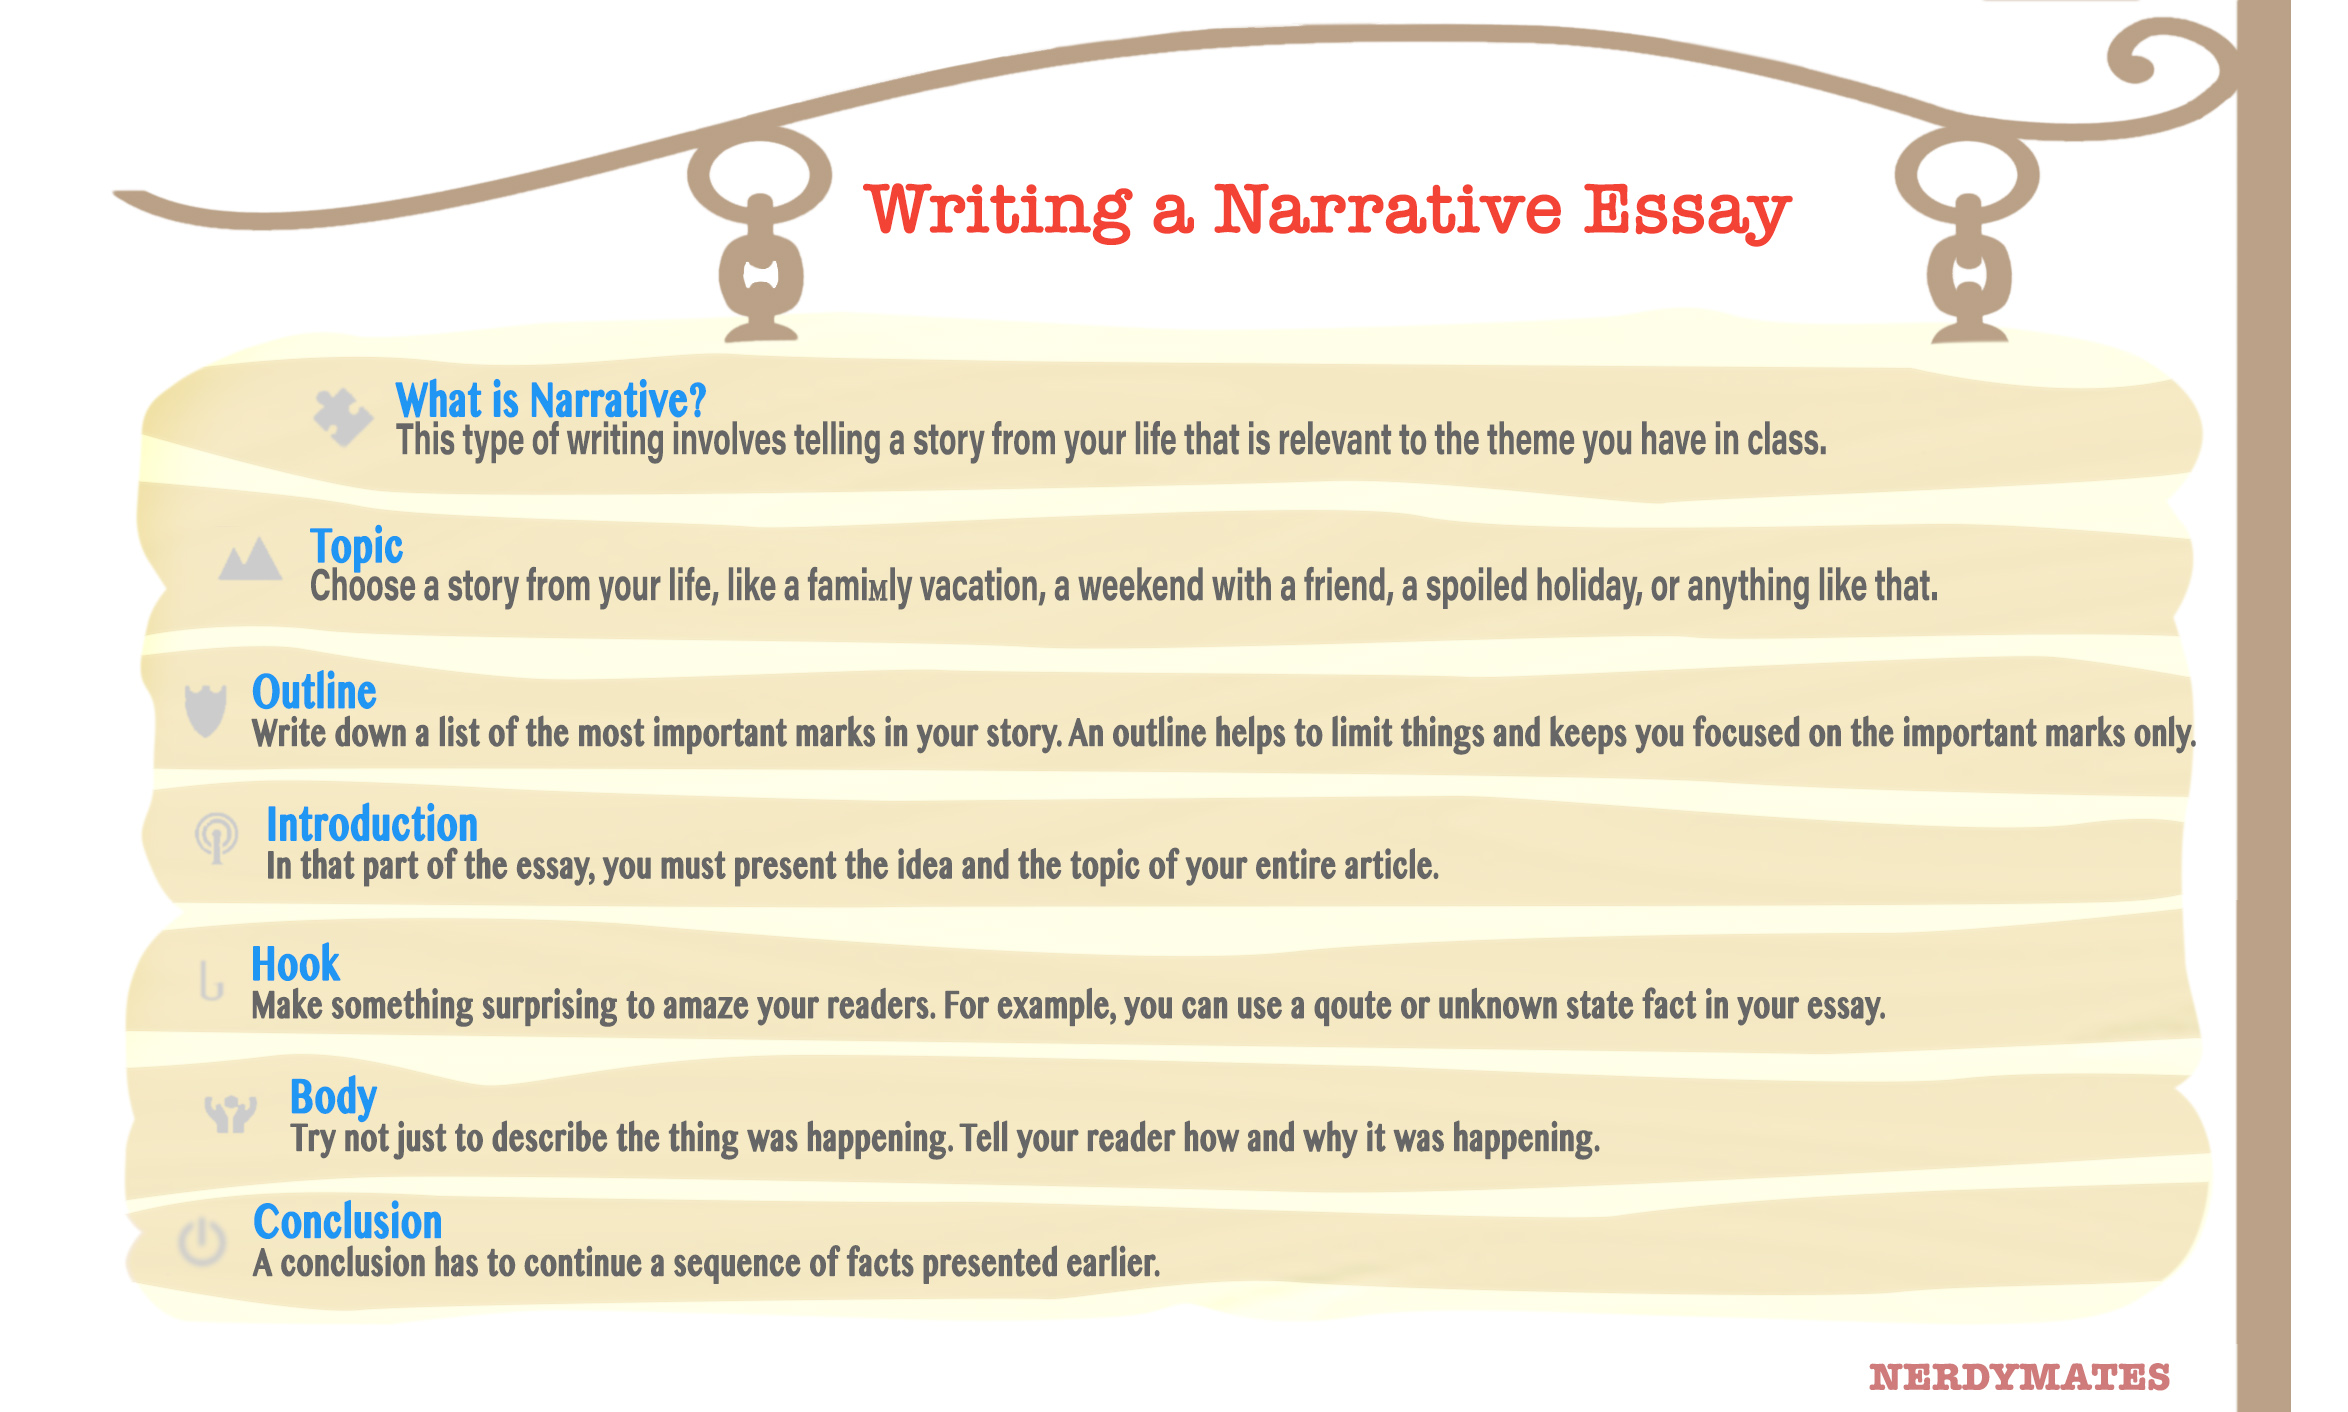 a narrative paper This is one of the only essays where you can get personal and tell a story see our narrative essay samples to learn how to express your own story in words.